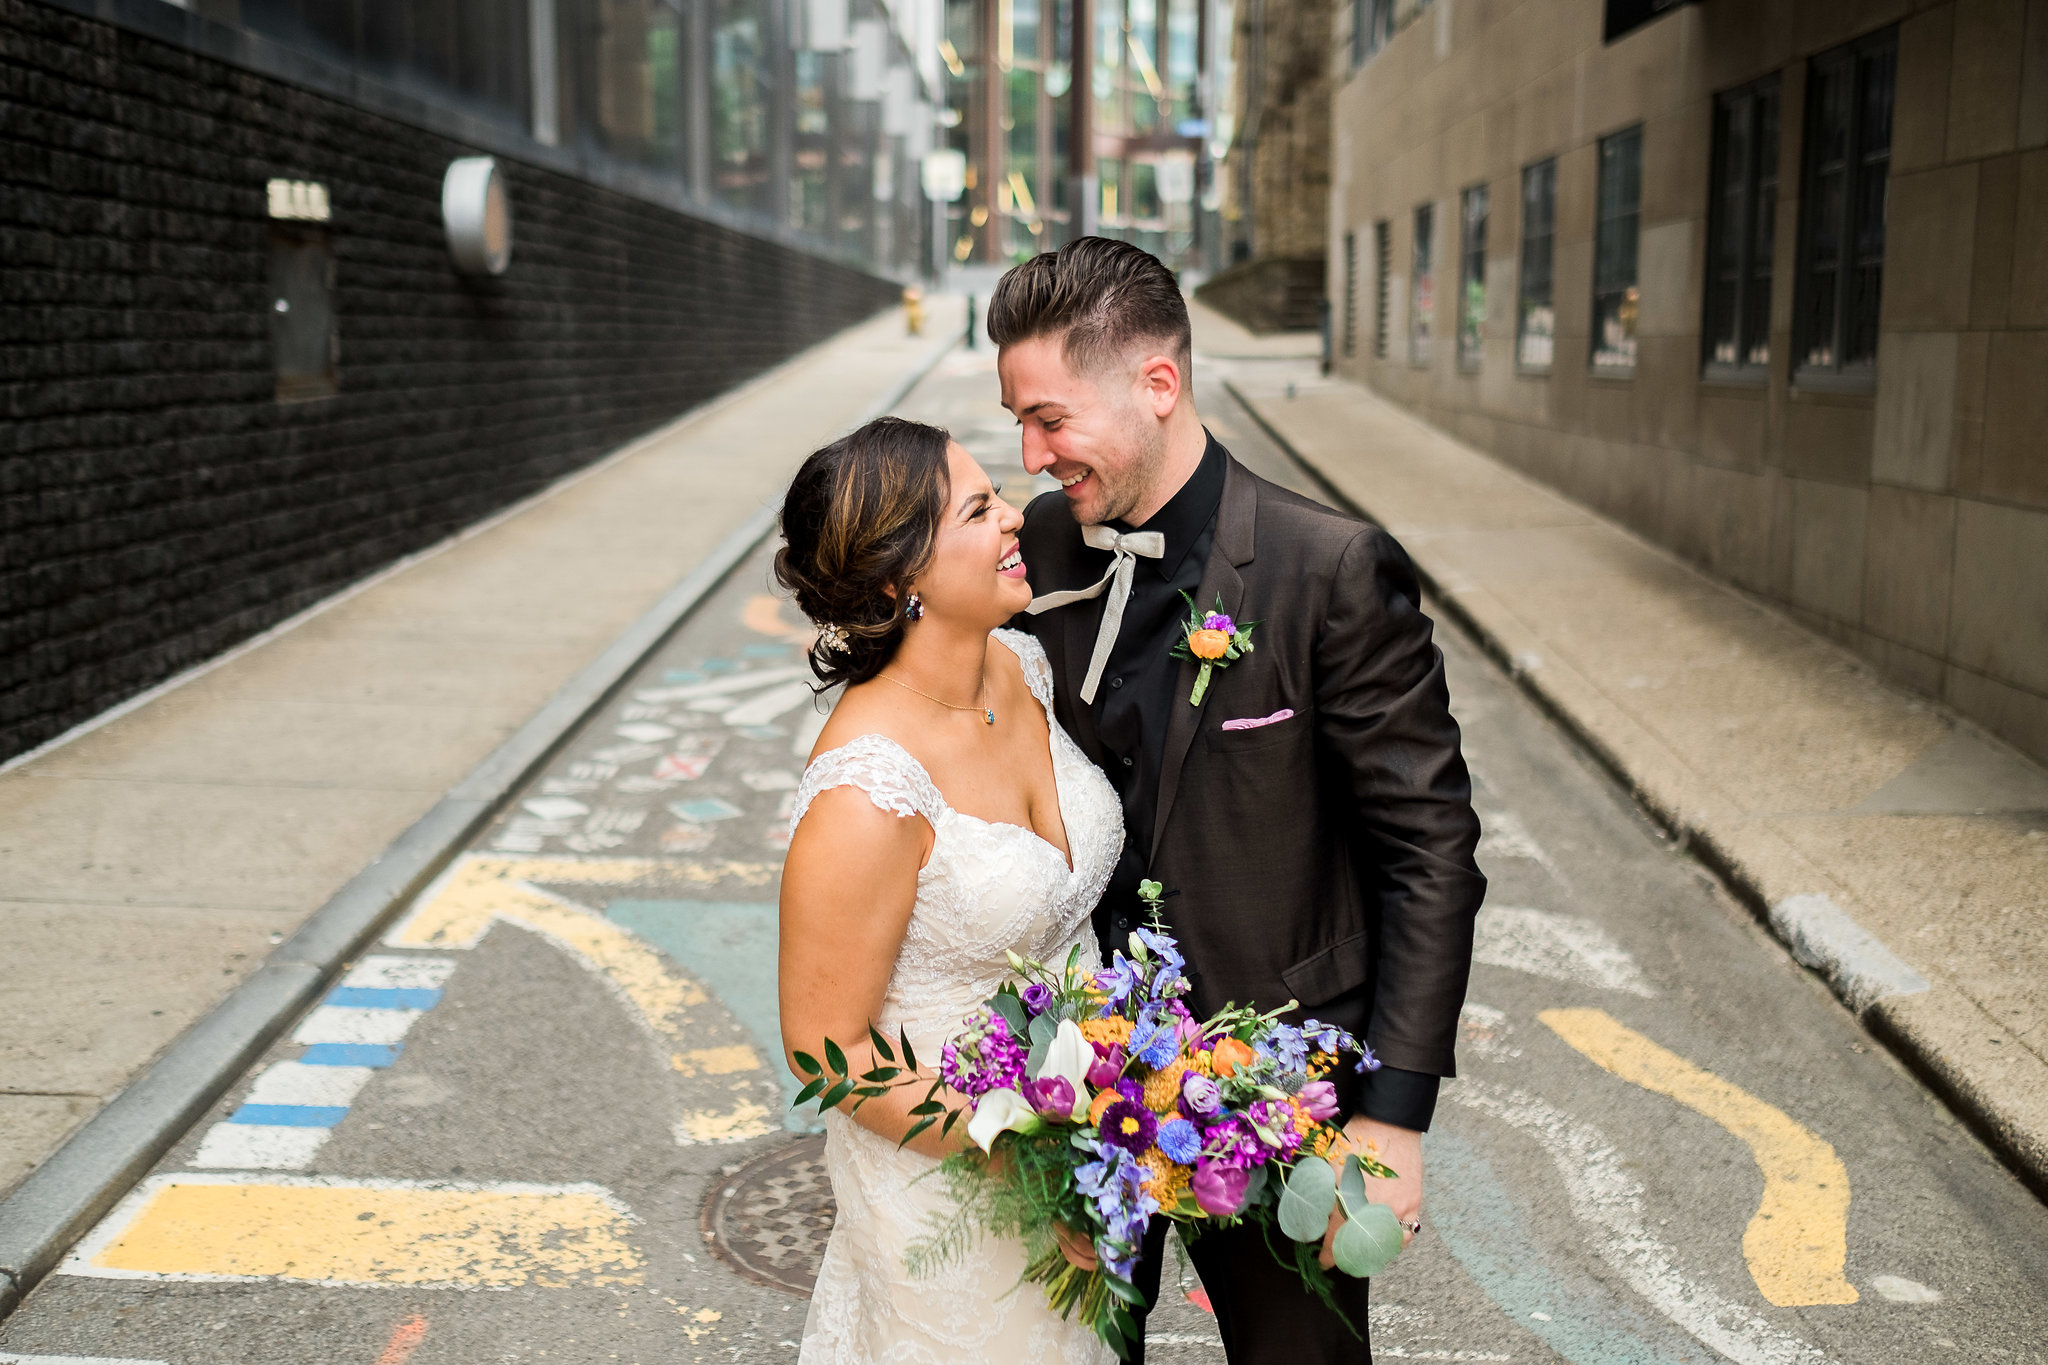 Andy Warhol Museum Wedding | Exhale Events | Pittsburgh Wedding Planners